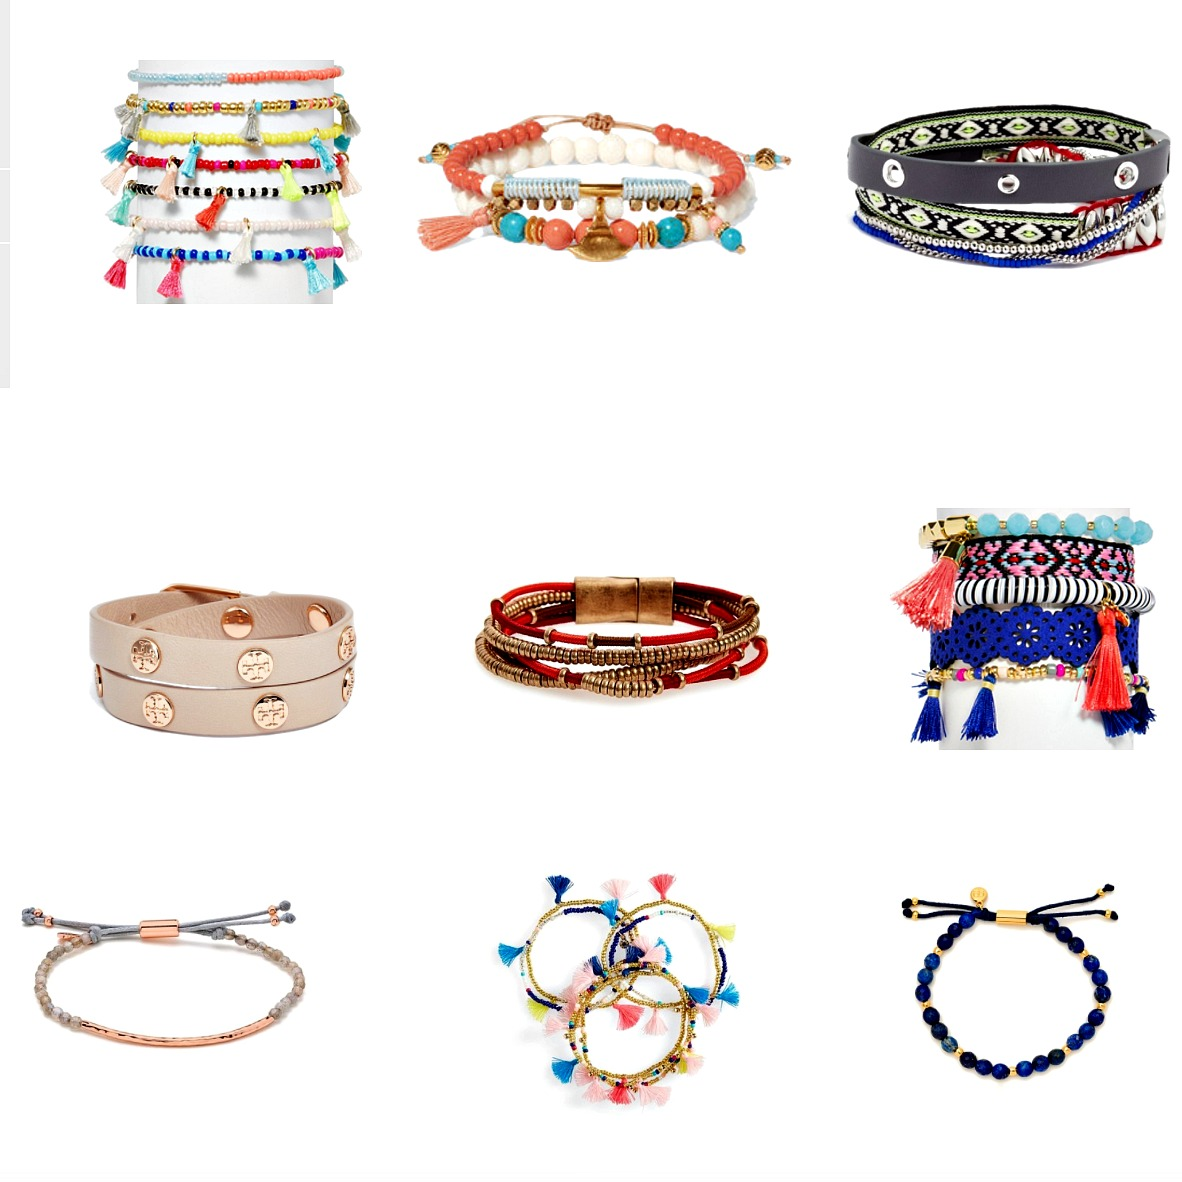 Ethnic bracelets make chic holiday accessories